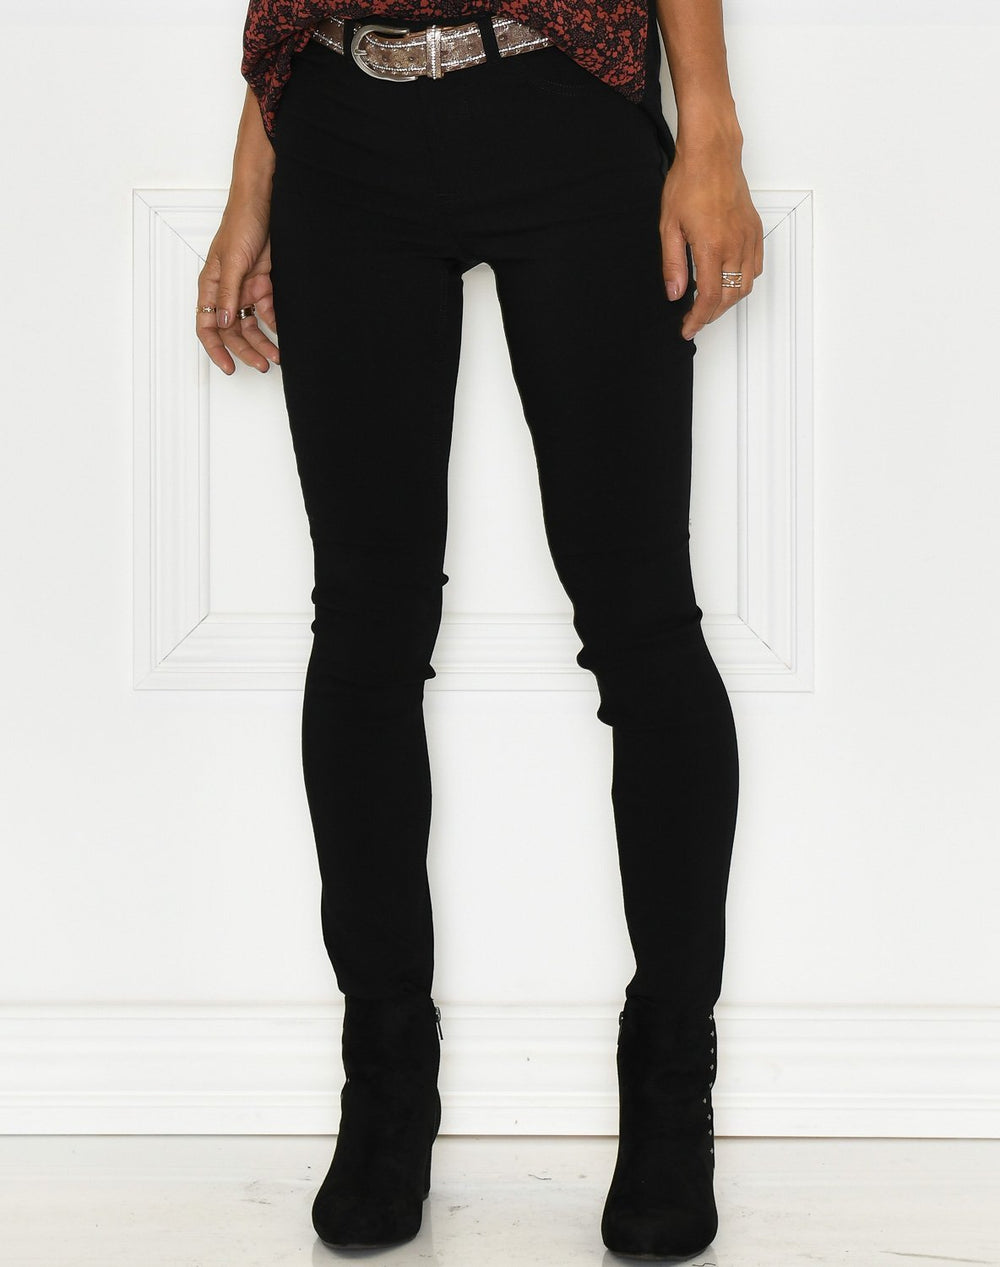 B. Young Elva Dixi 5 pocket pants black - Online-Mode